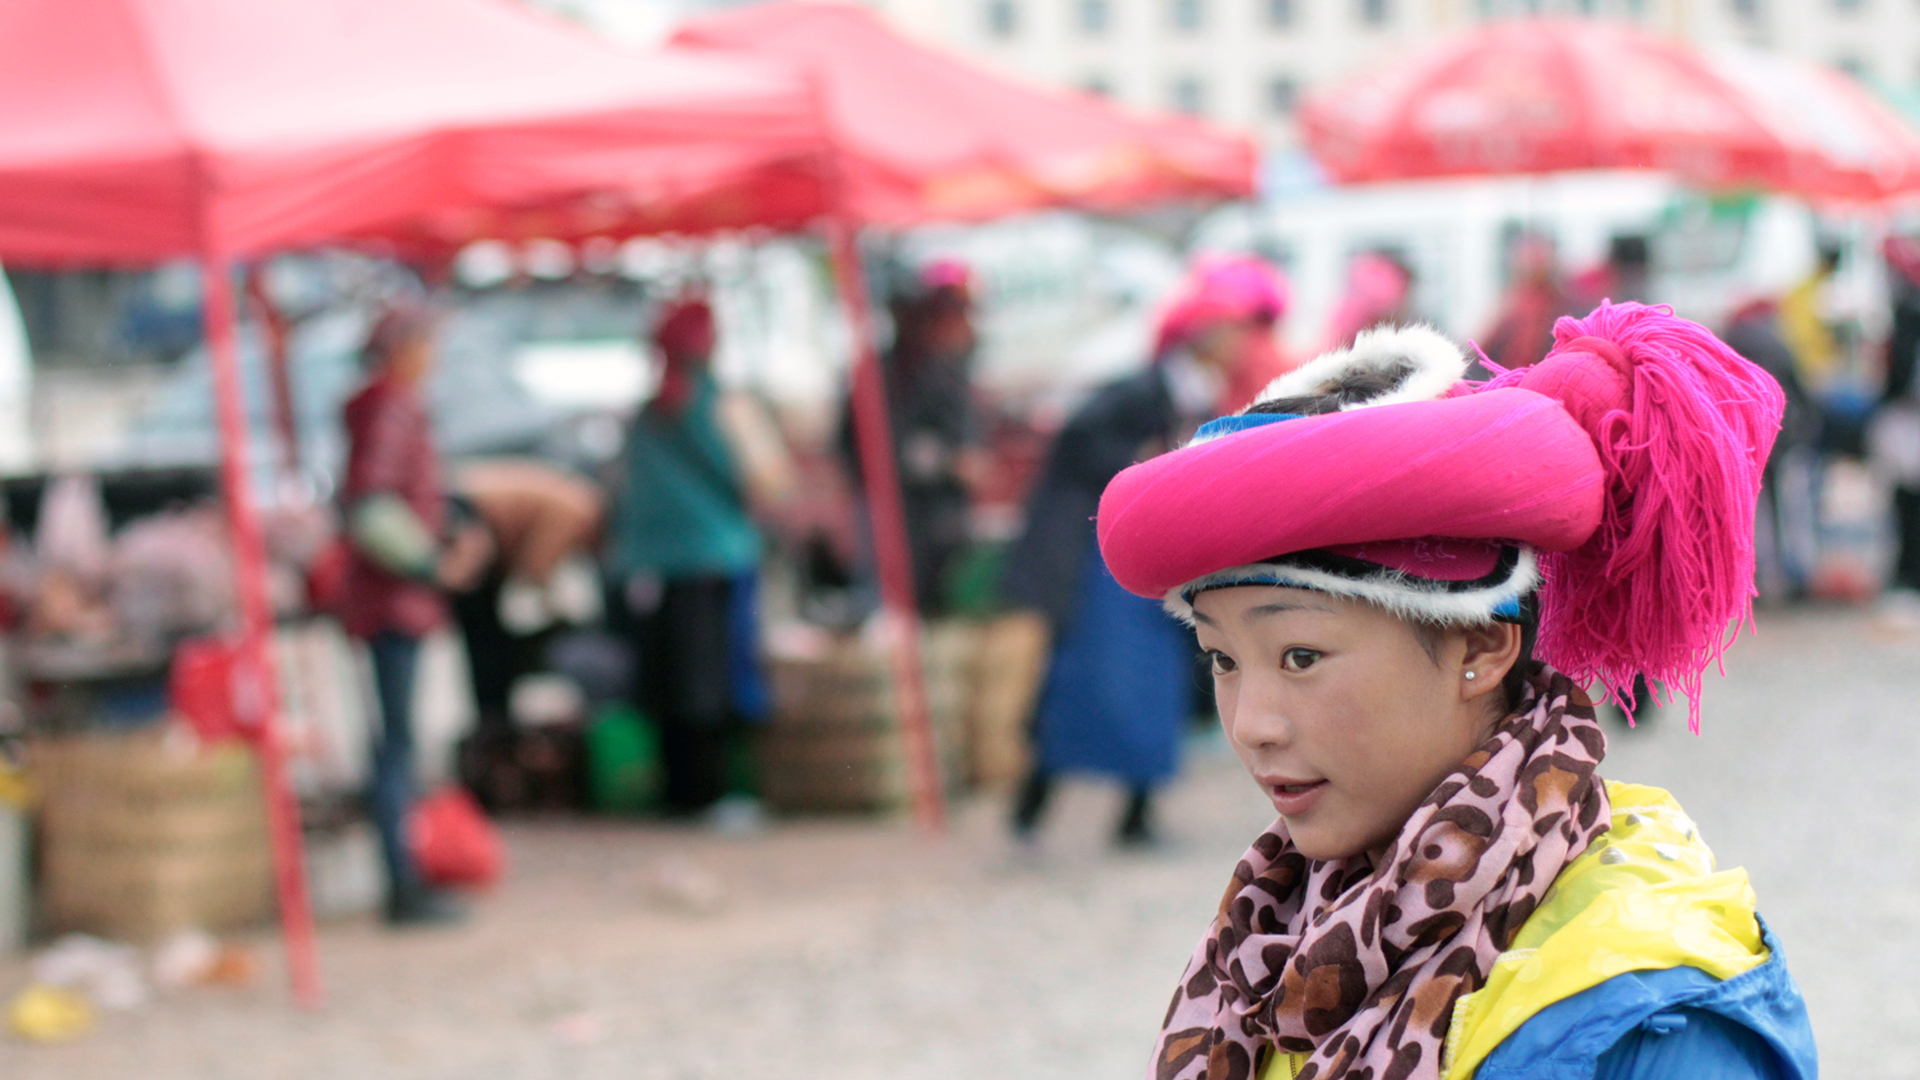 A TIBETAN GIRL IN THE MARKET